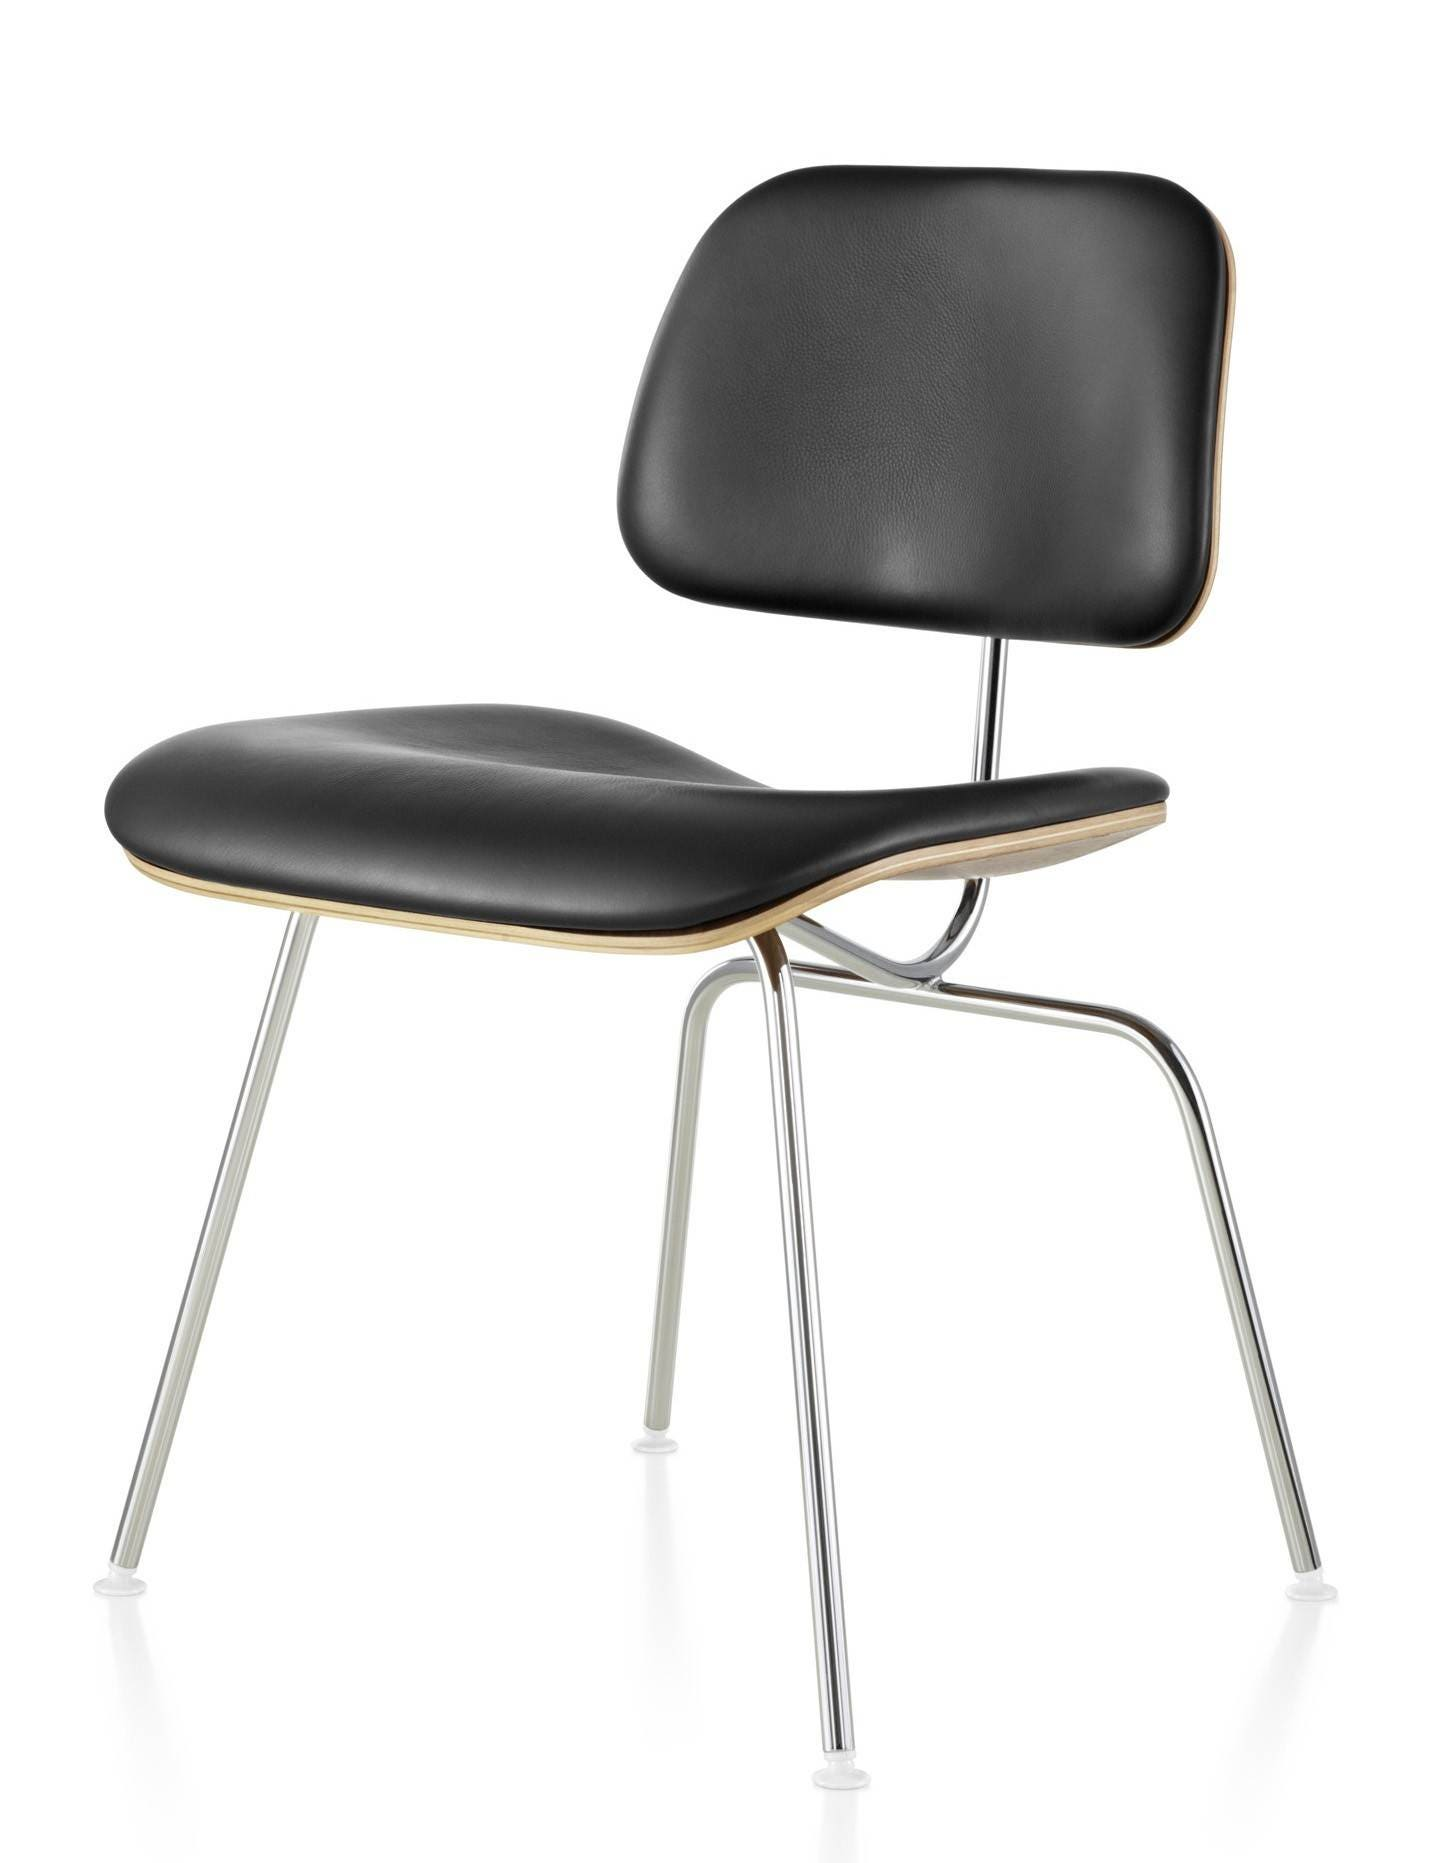 Herman Miller Eames 174 Molded Plywood Upholstered Dining